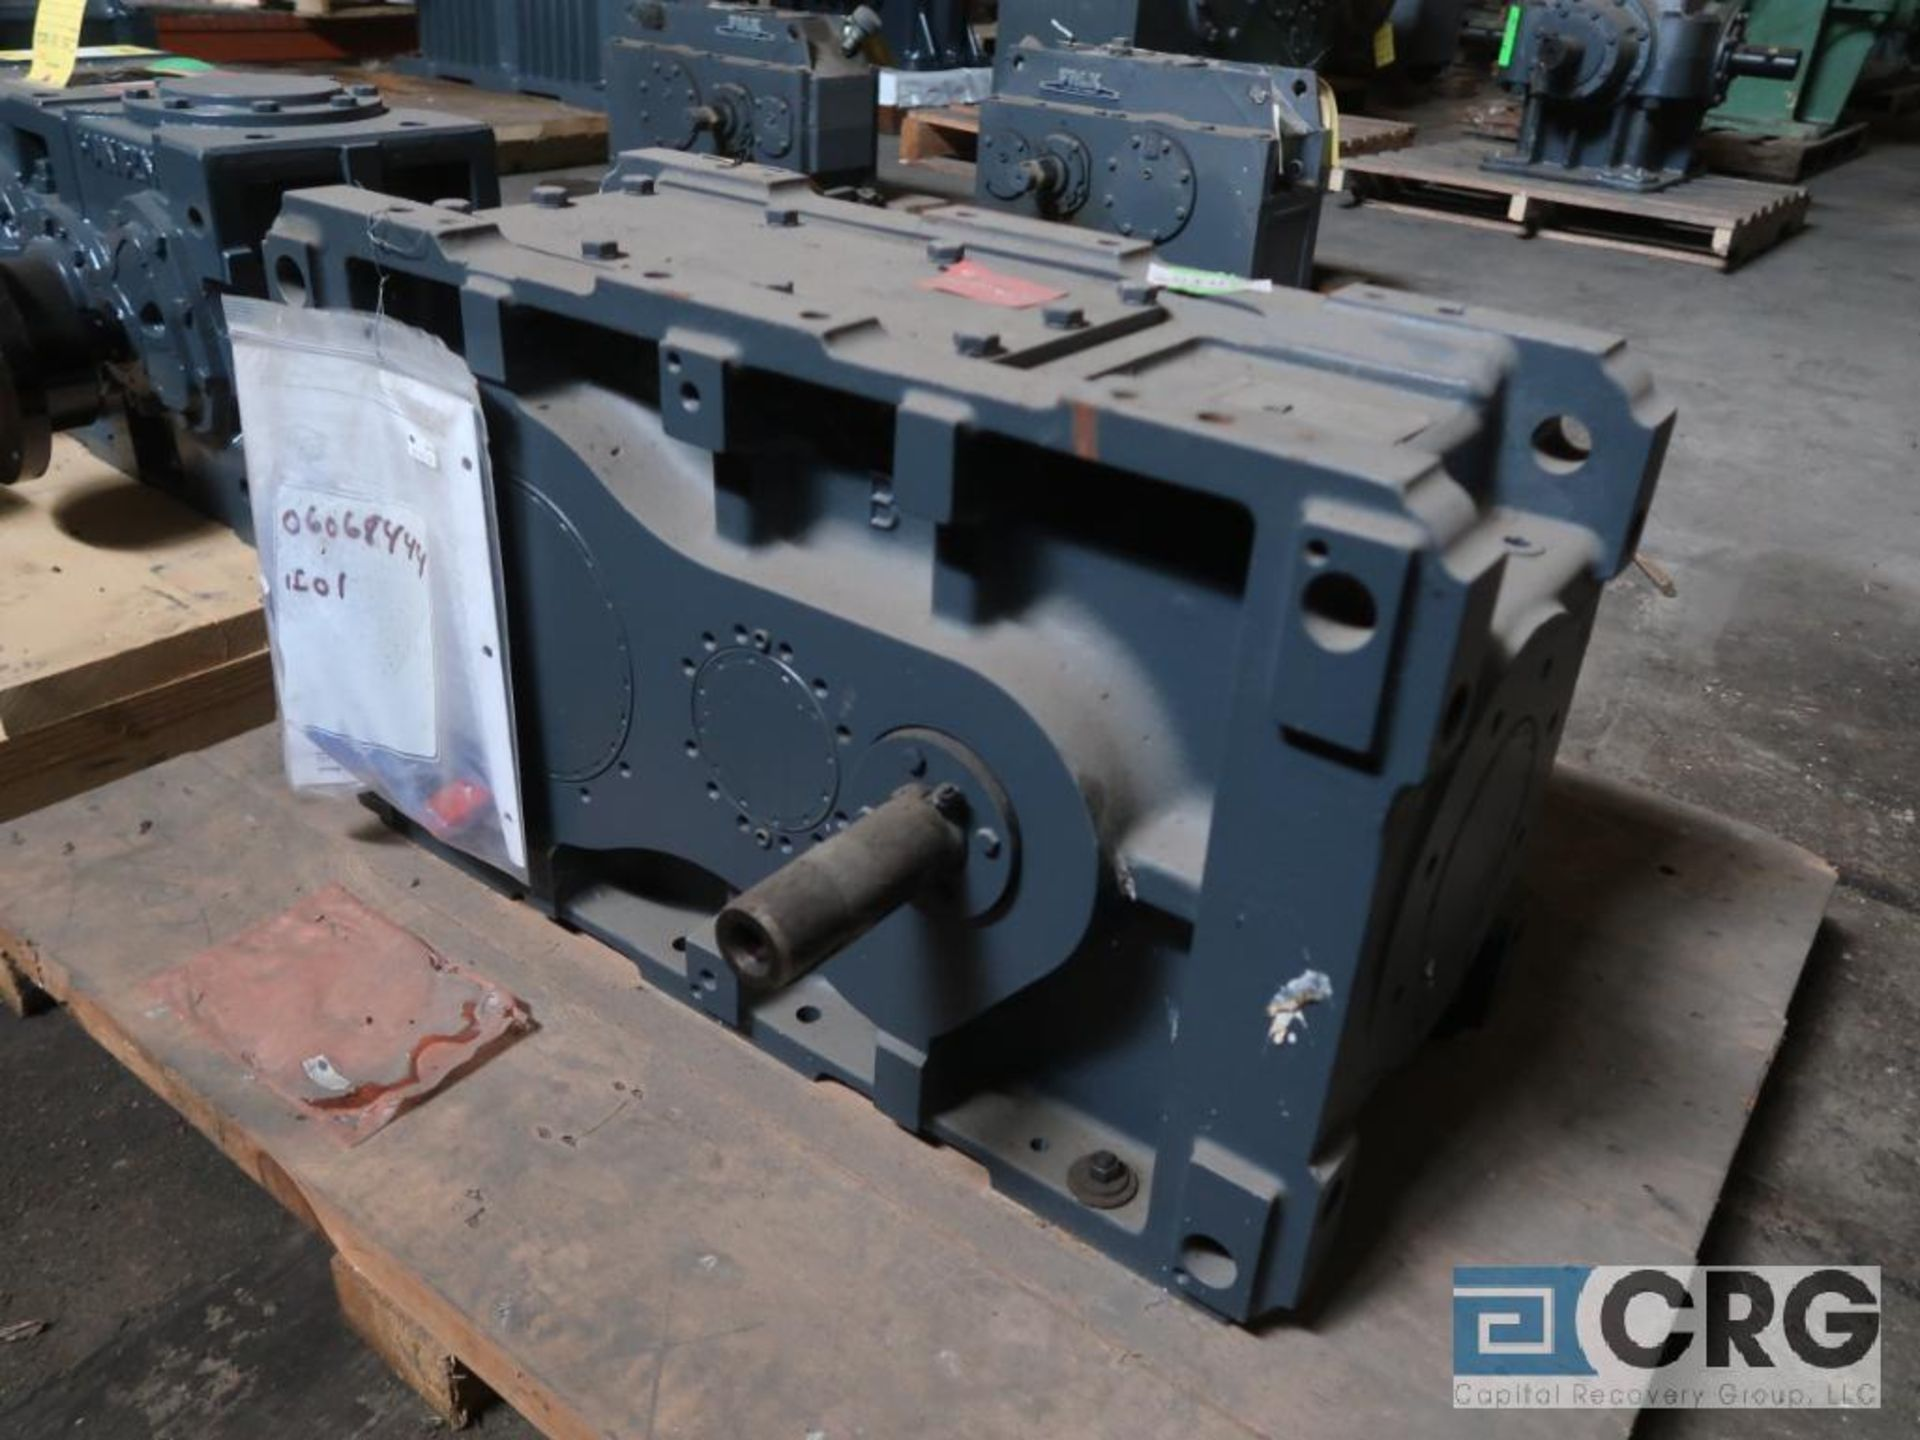 Falk M1130DHC 2A gear drive, ratio-9.932, RPM 1170/117.8, service rate HP. 25, s/n 068444C1 (Next - Image 2 of 3